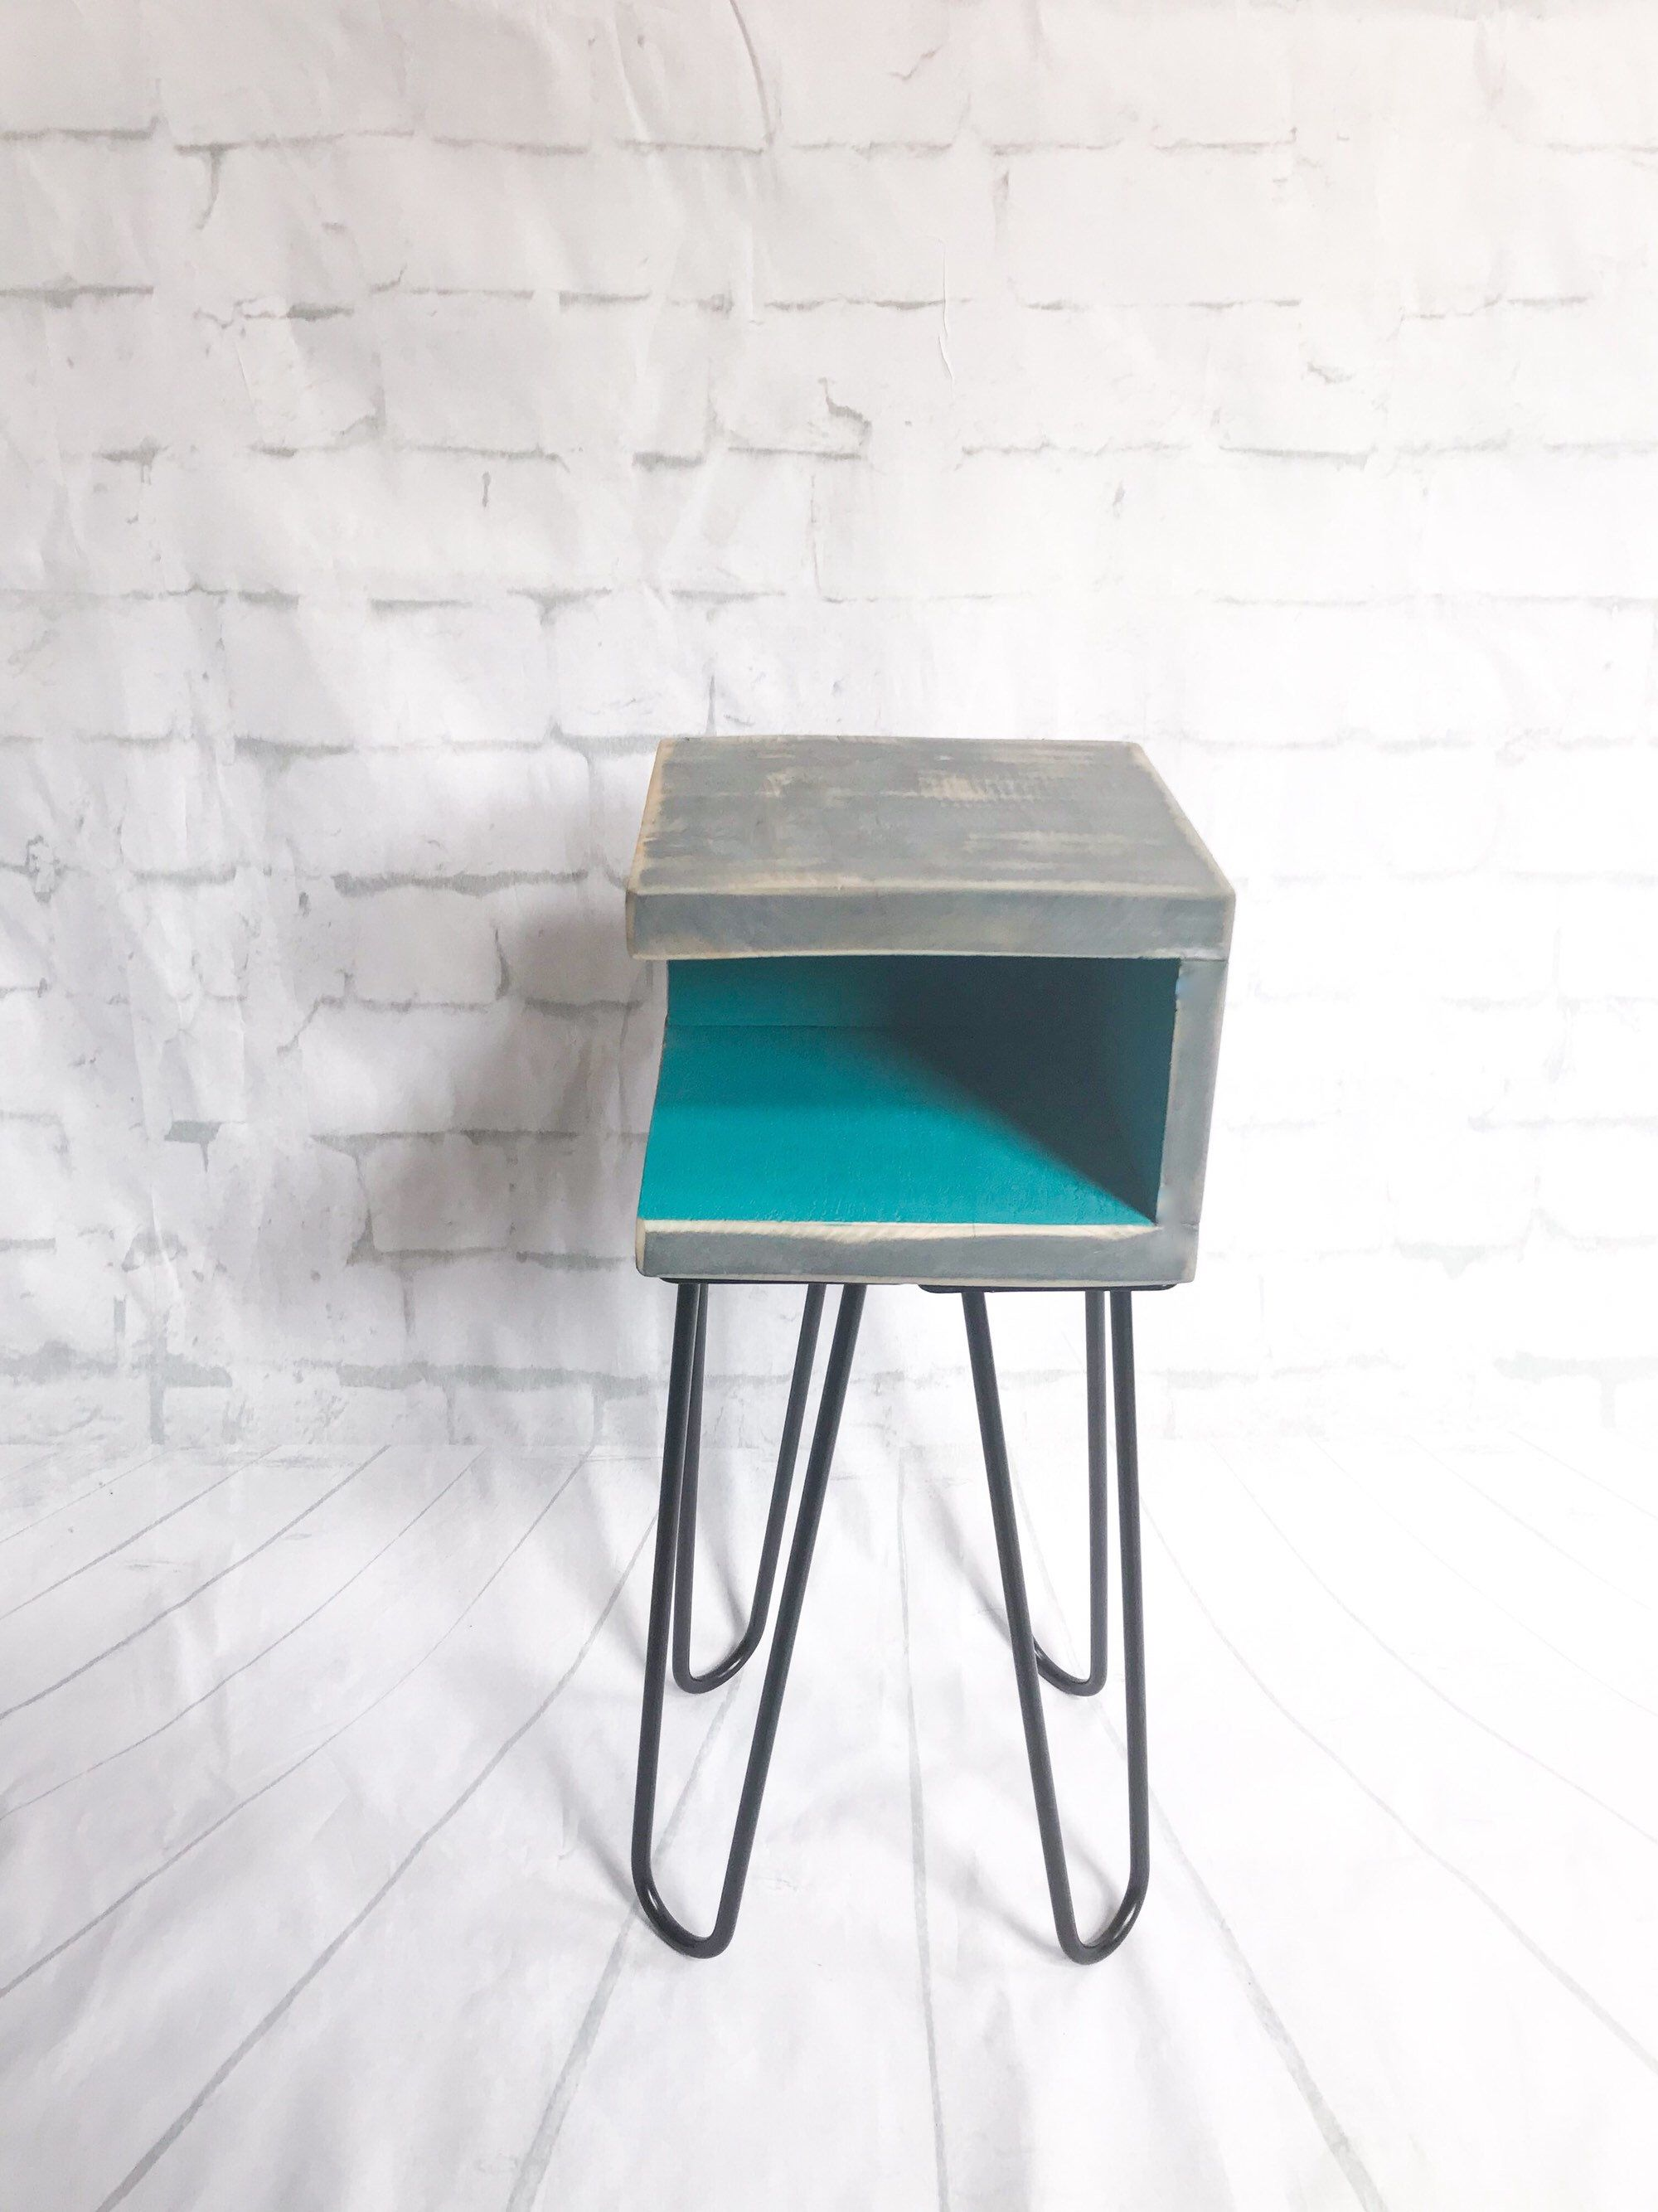 handmade nightstand modern mid century rustic retro small blue accent table side end tables midcentury hairpin distressed reclaimed barn wood coffee build grey linen tablecloth